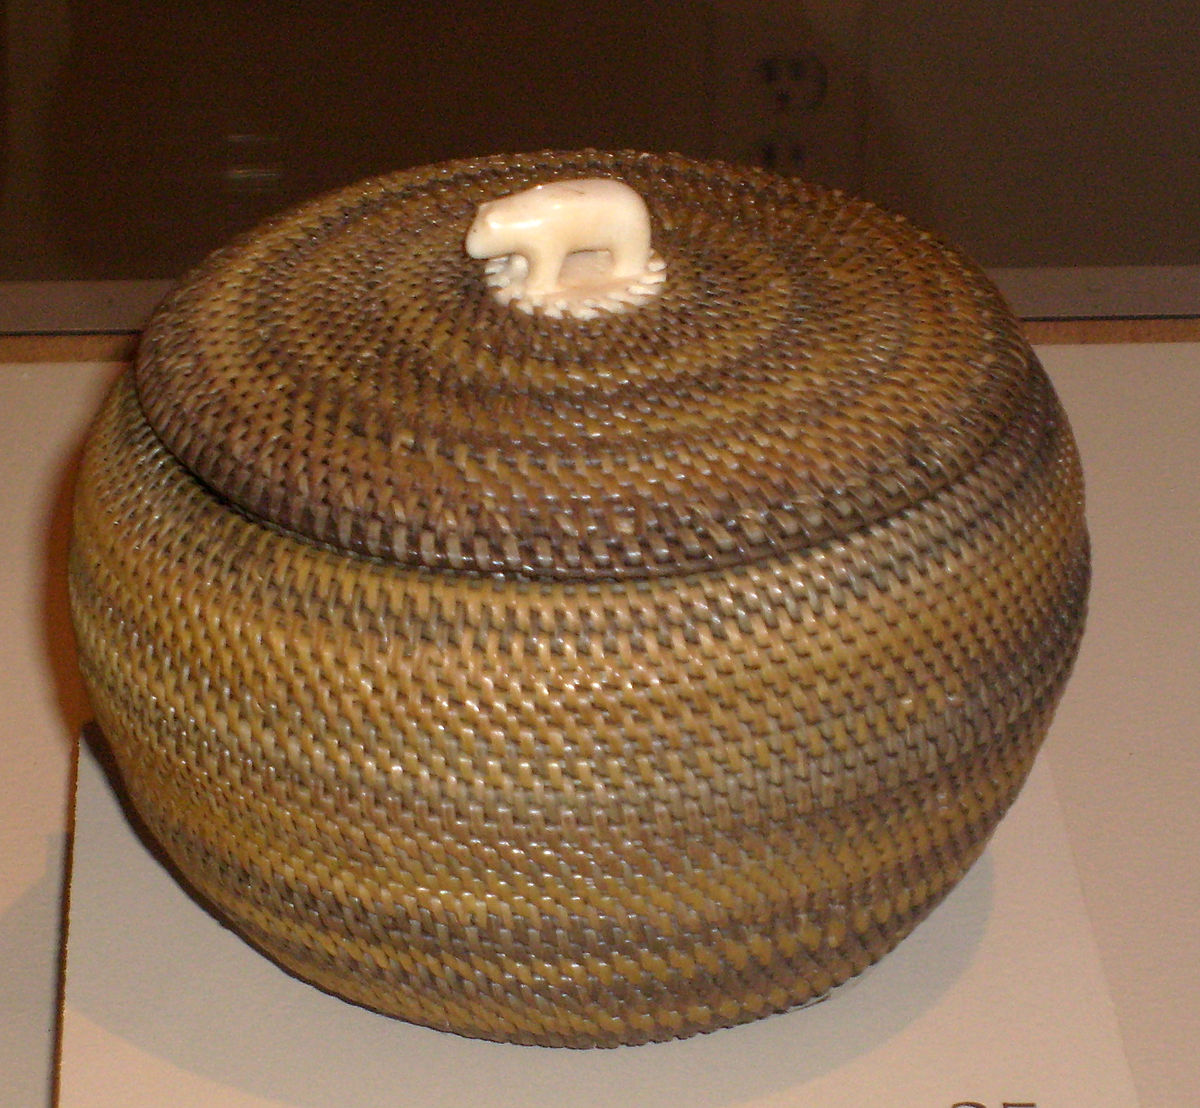 Basket Weaving O Que é : Baleen basketry wikipedia